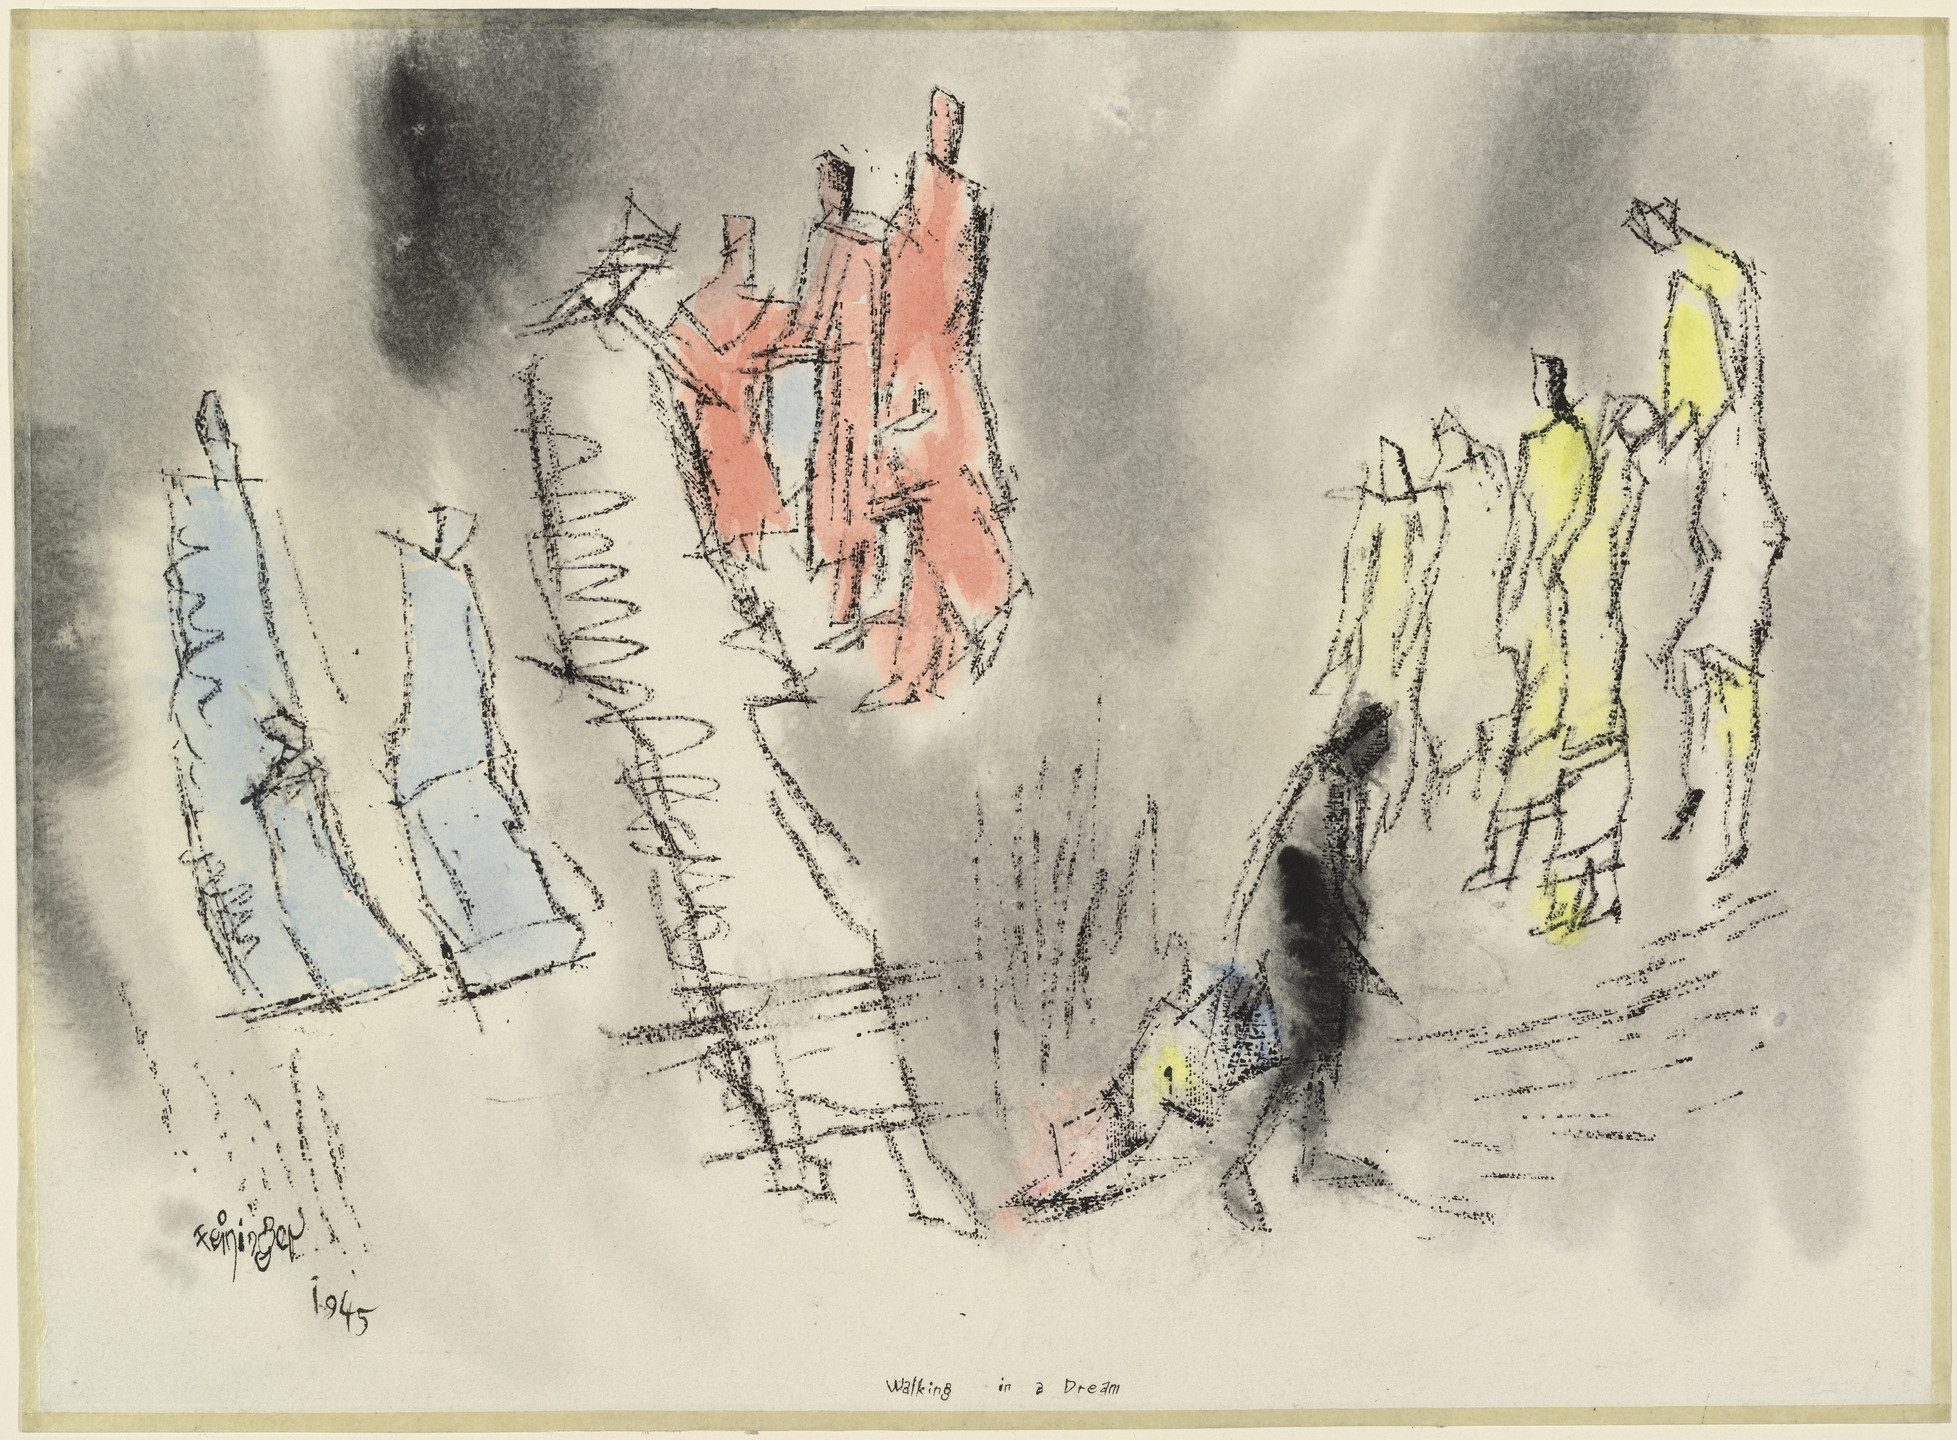 Lyonel Feininger. Walking in a Dream. 1945